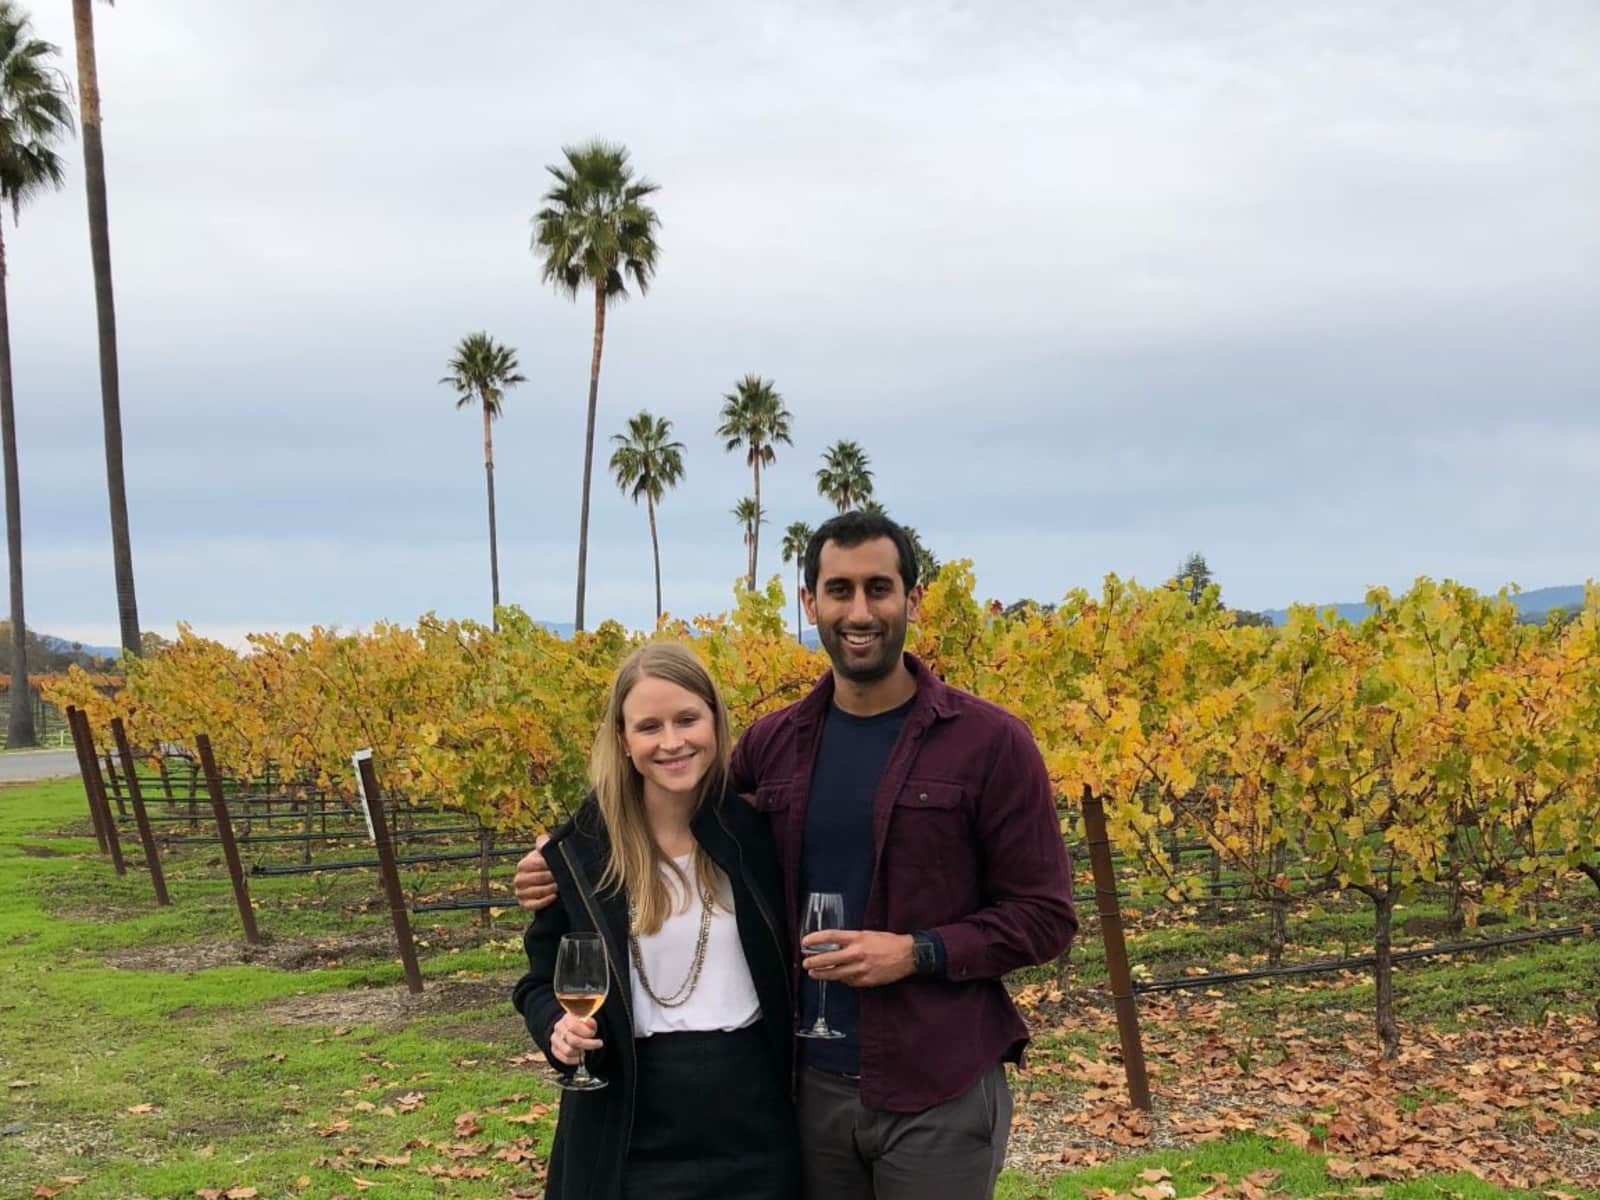 Sarah & amartya & Amartya from San Francisco, California, United States